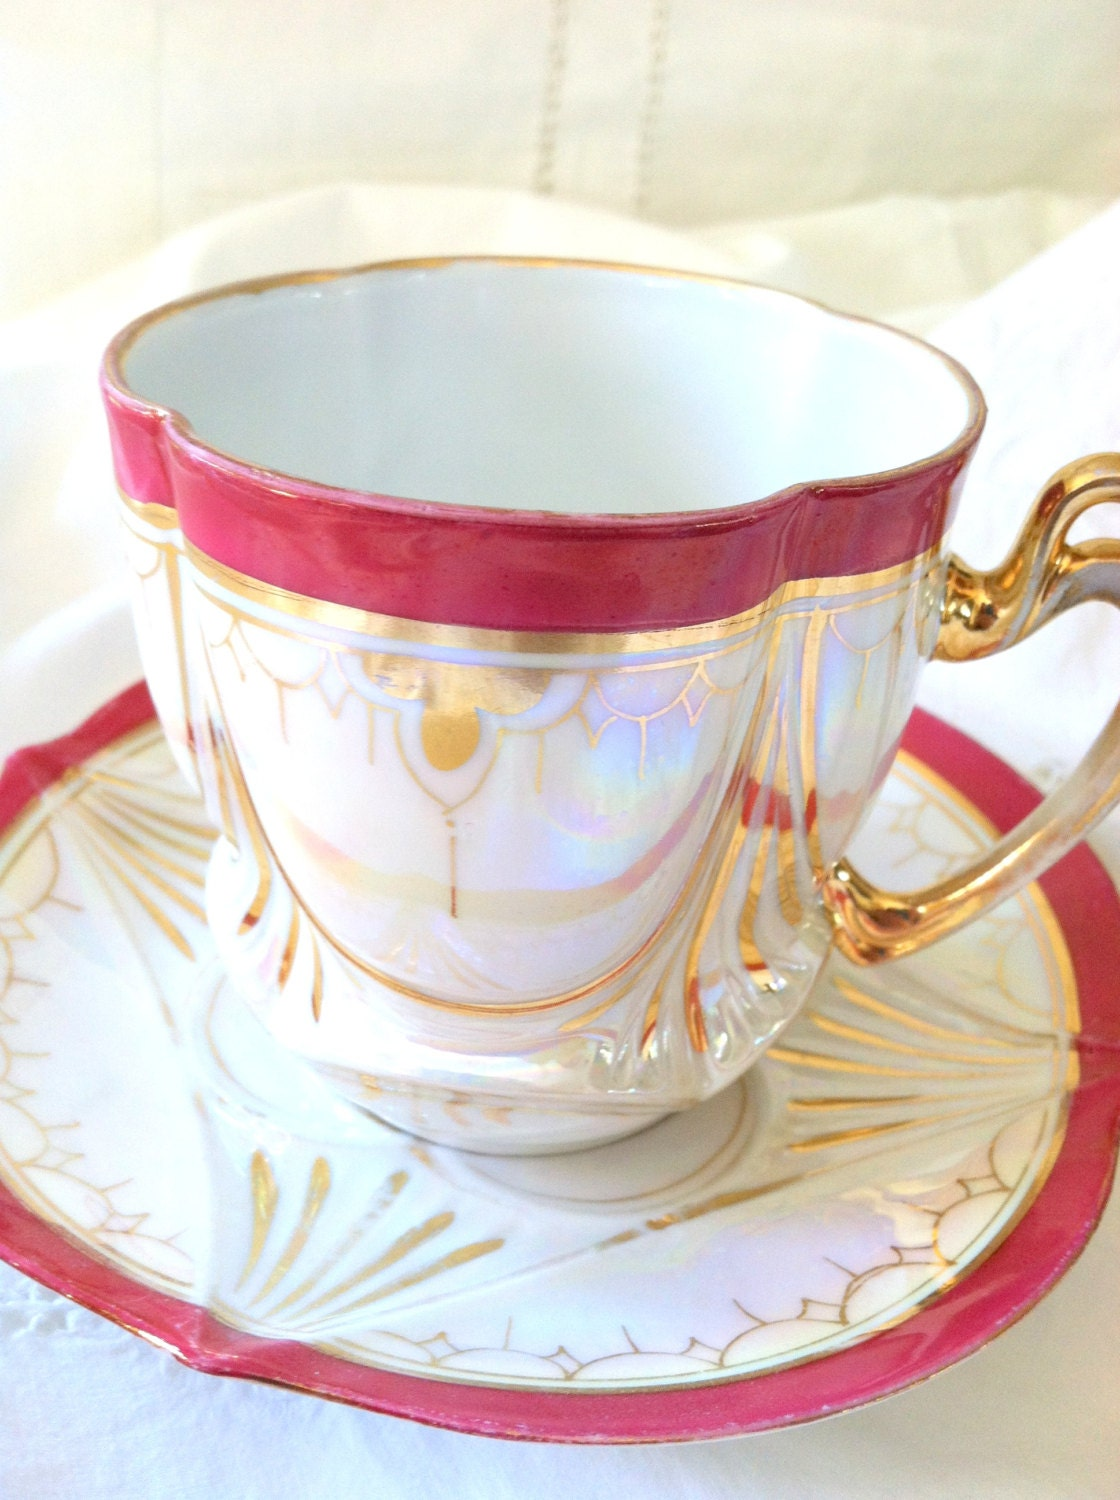 Vintage Opalescent Tea Cup and Saucer Christmas Tea Party Birthday, Thank You or Housewarming Gift Inspiration - MariasFarmhouse